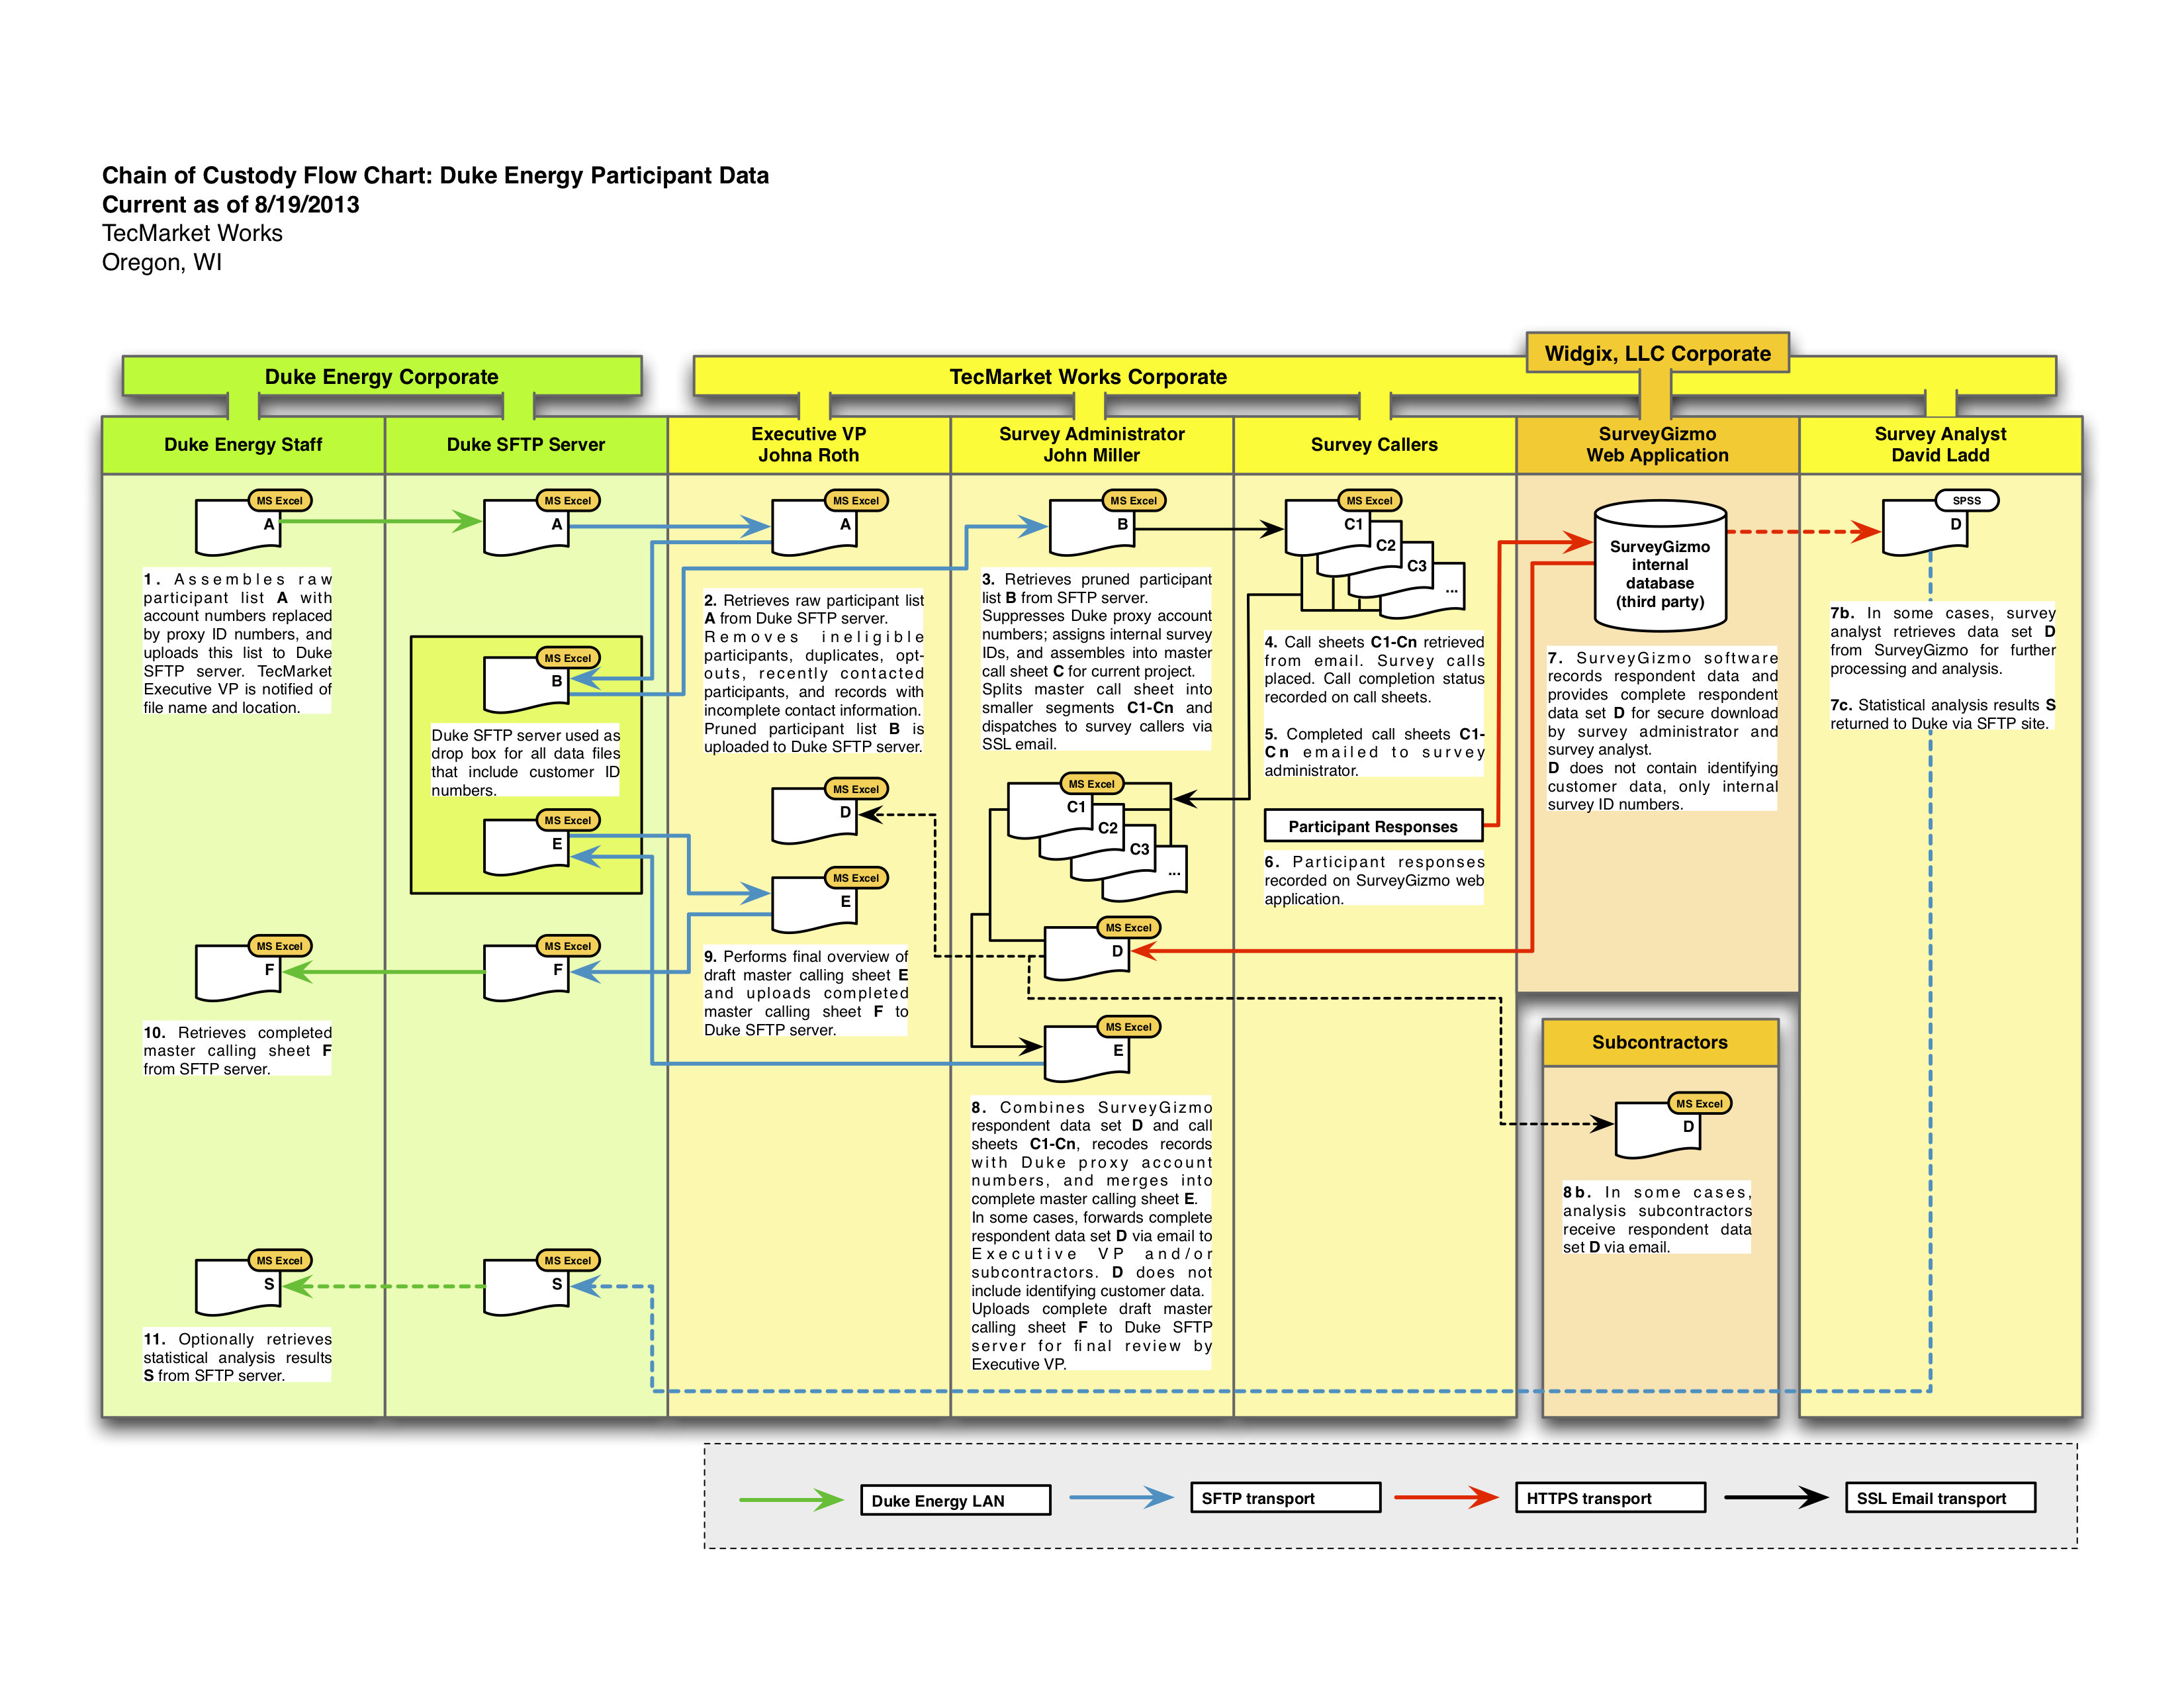 Flowchart Demonstrating Chain Of Custody Of Survey Participant